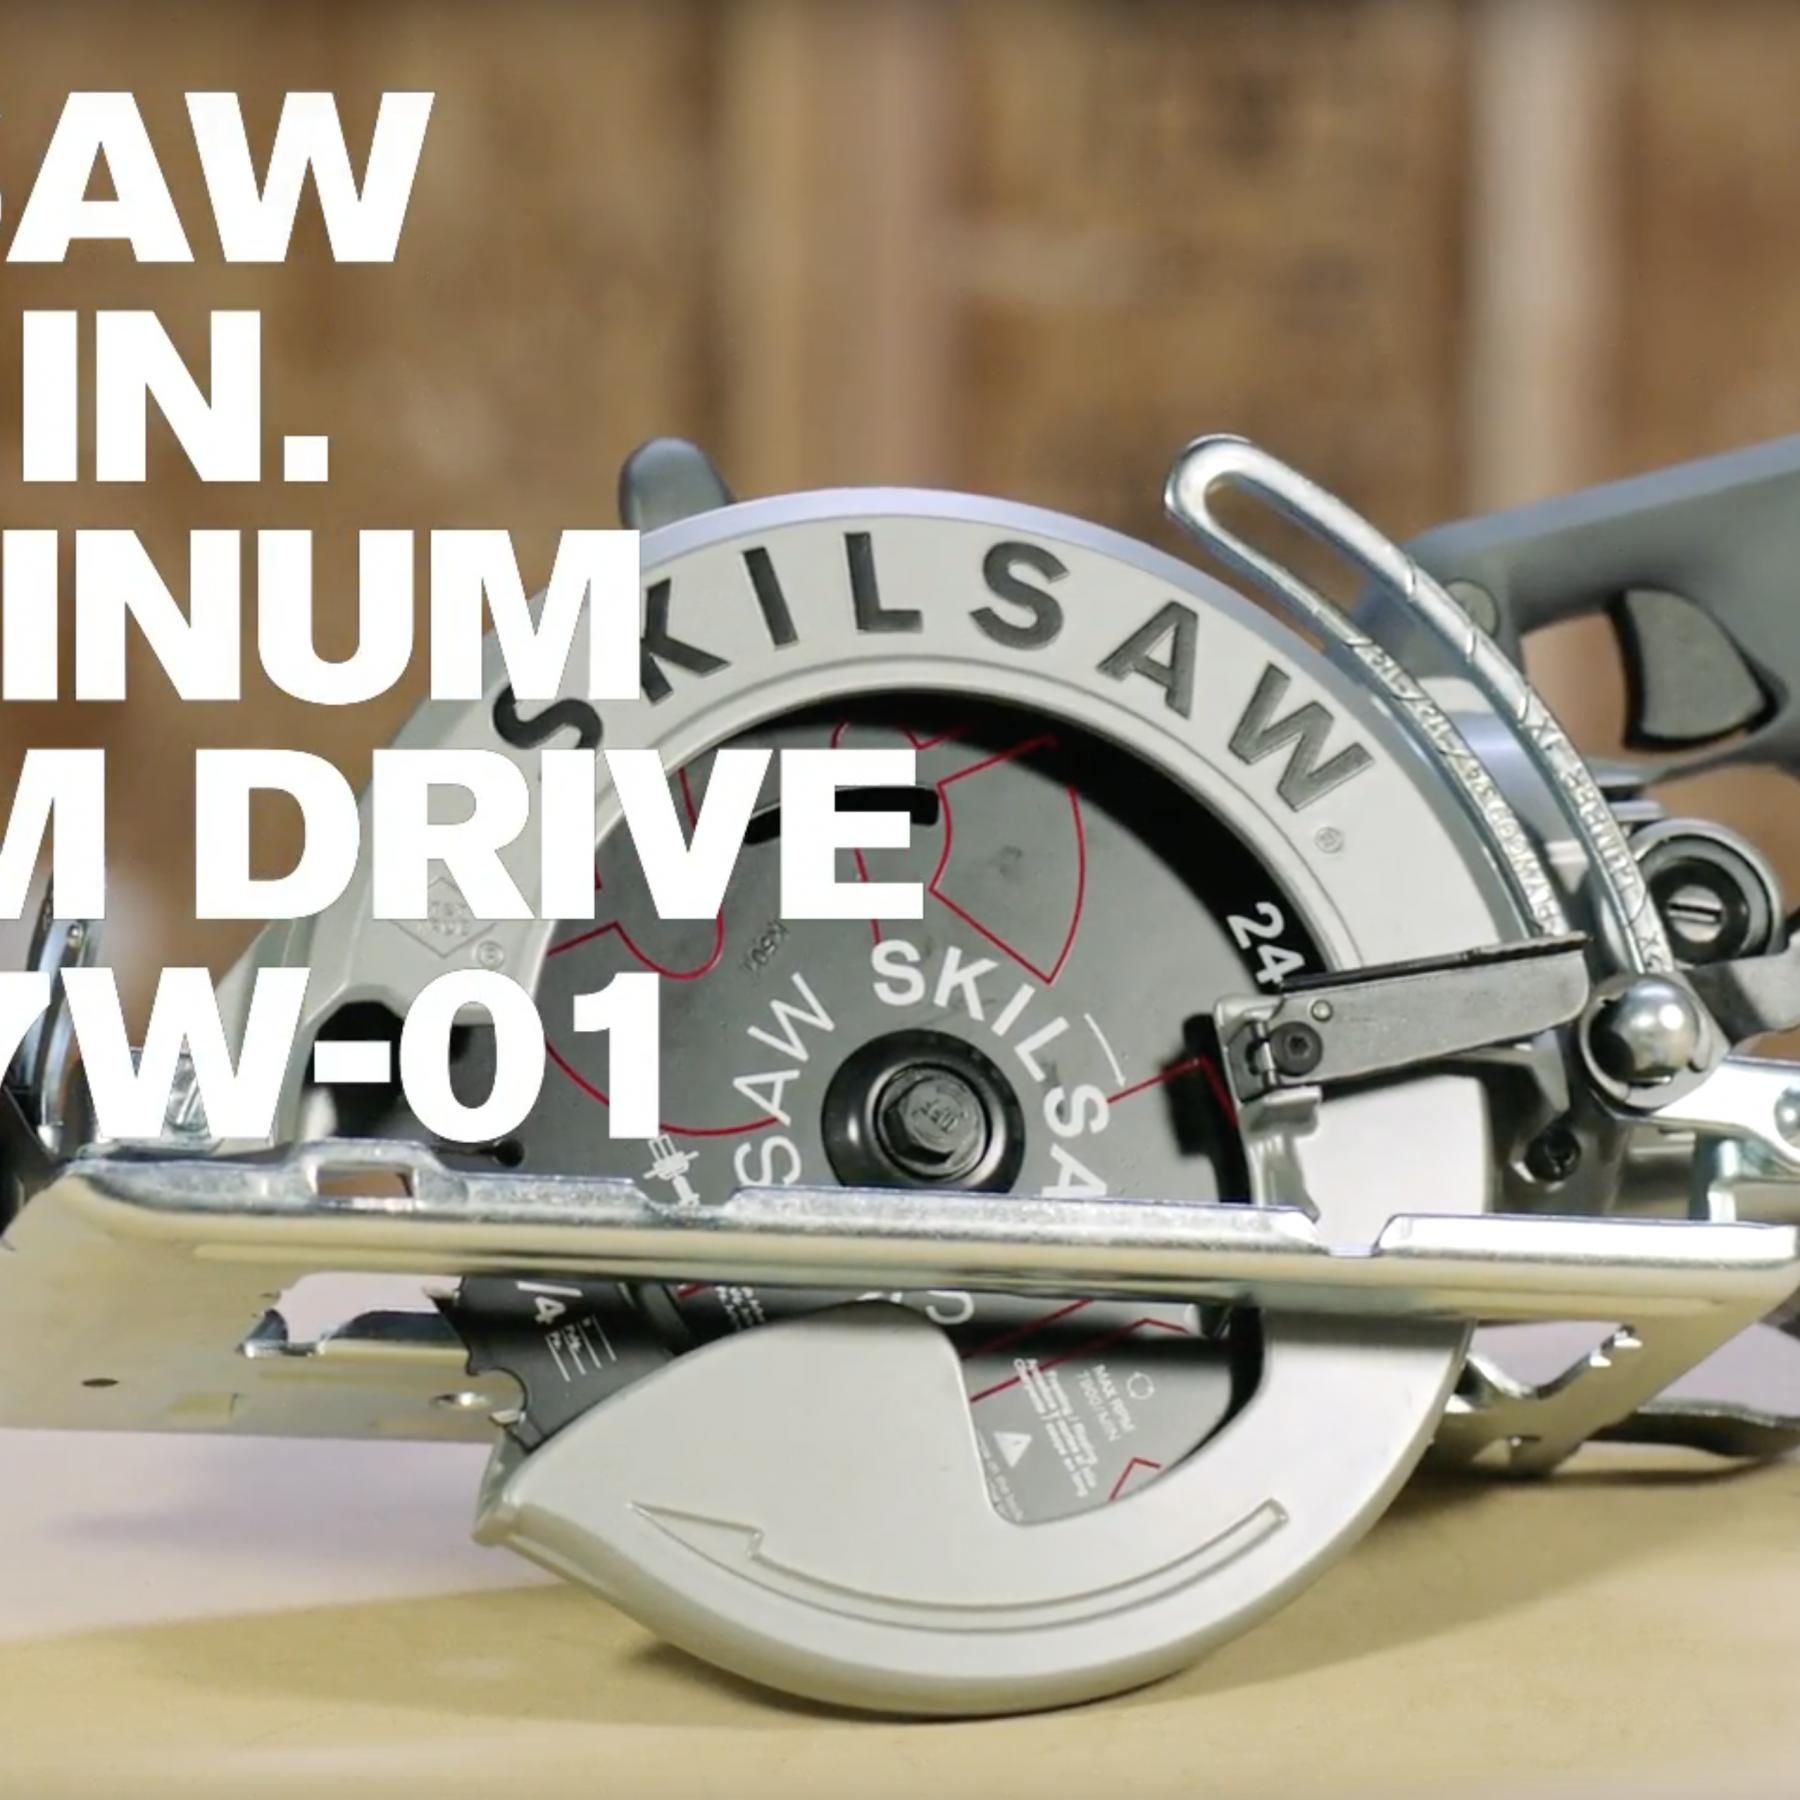 SKILSAW 7-1/4 In. Aluminum Worm Drive Saw, SPT77W-01